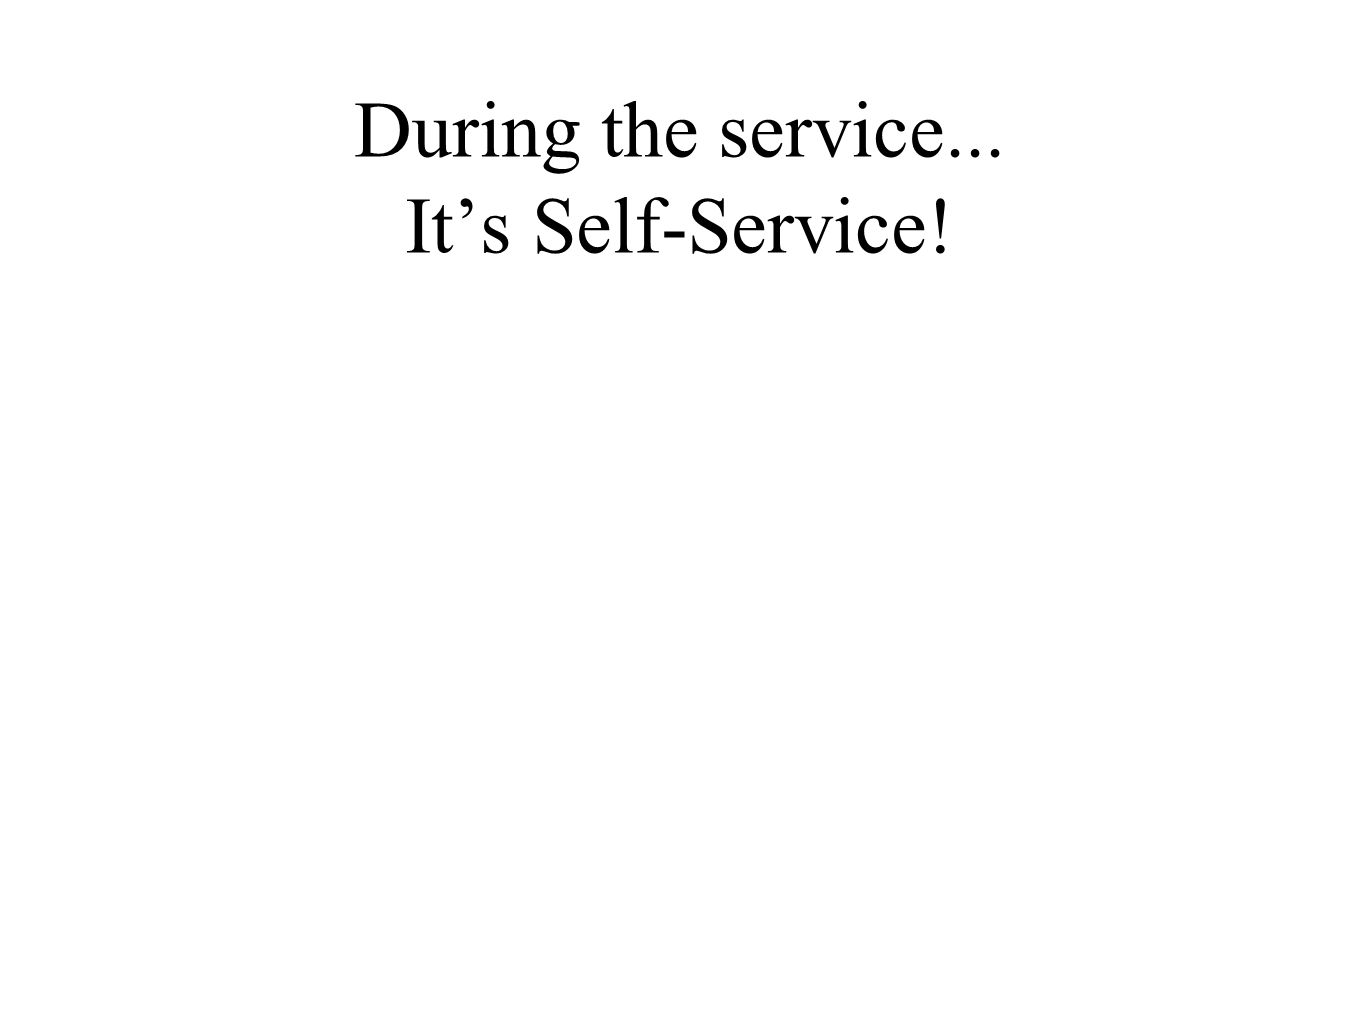 During the service... It's Self-Service!